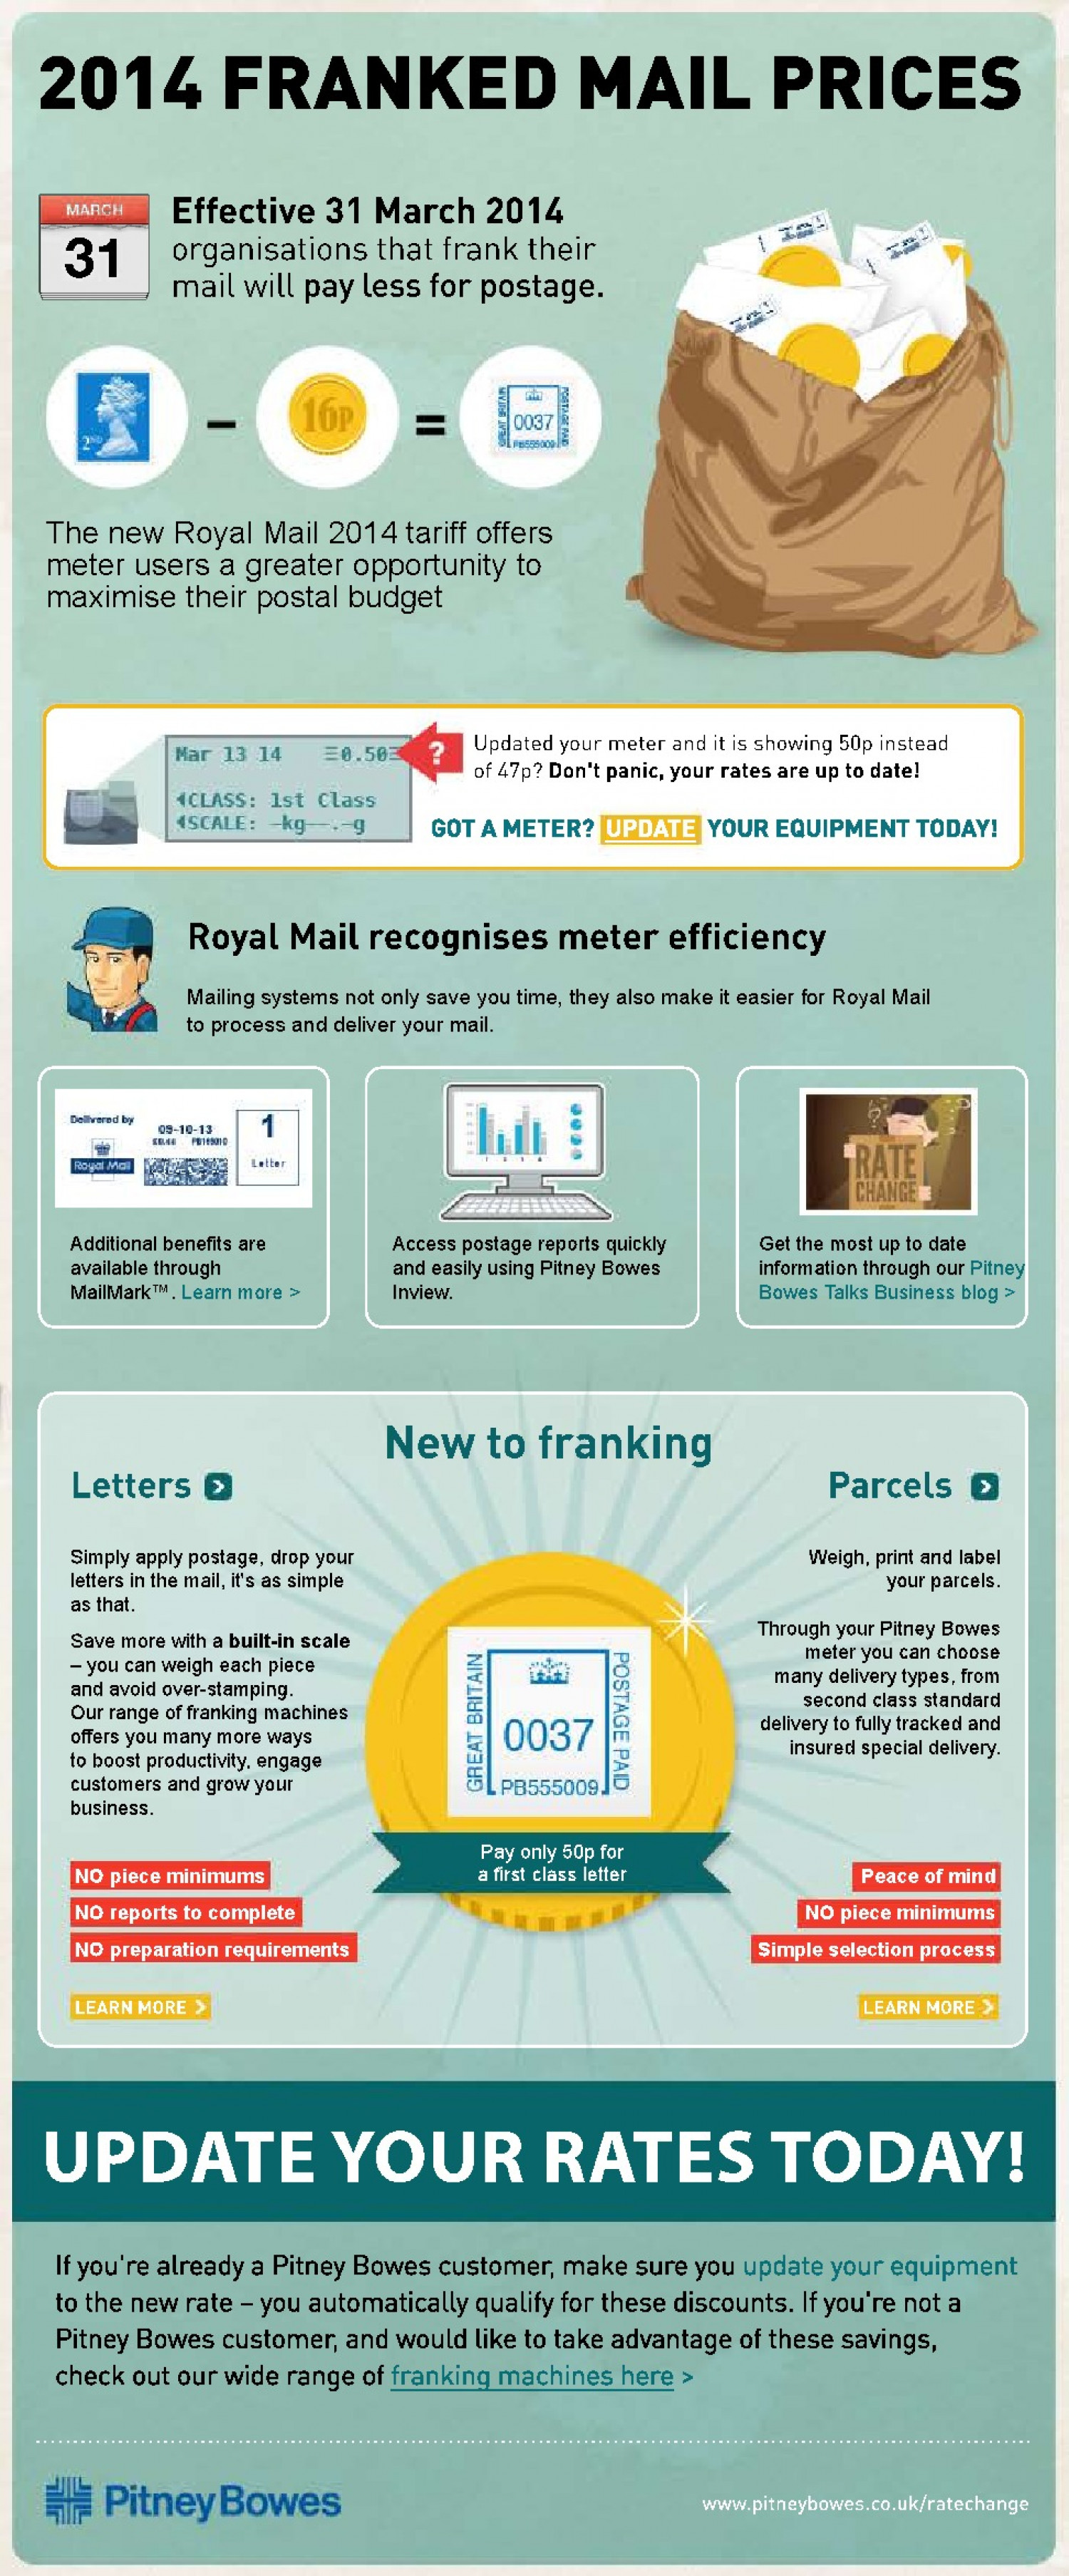 2014 Franked Mail Prices Infographic